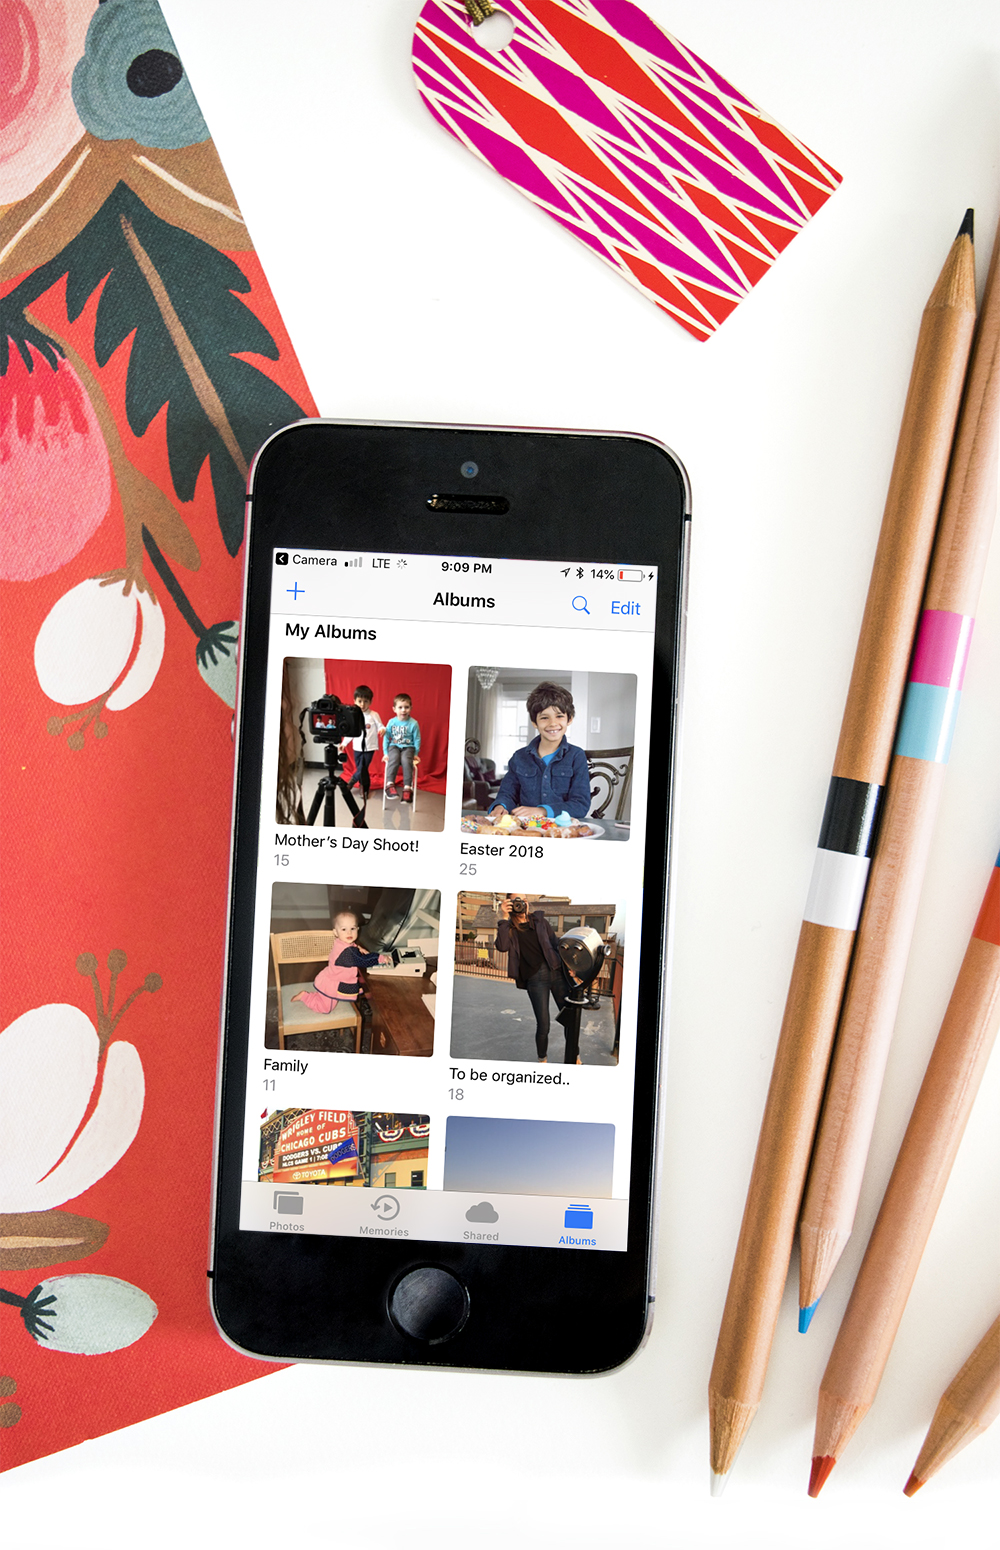 Tips for organizing photos on your phone - create albums